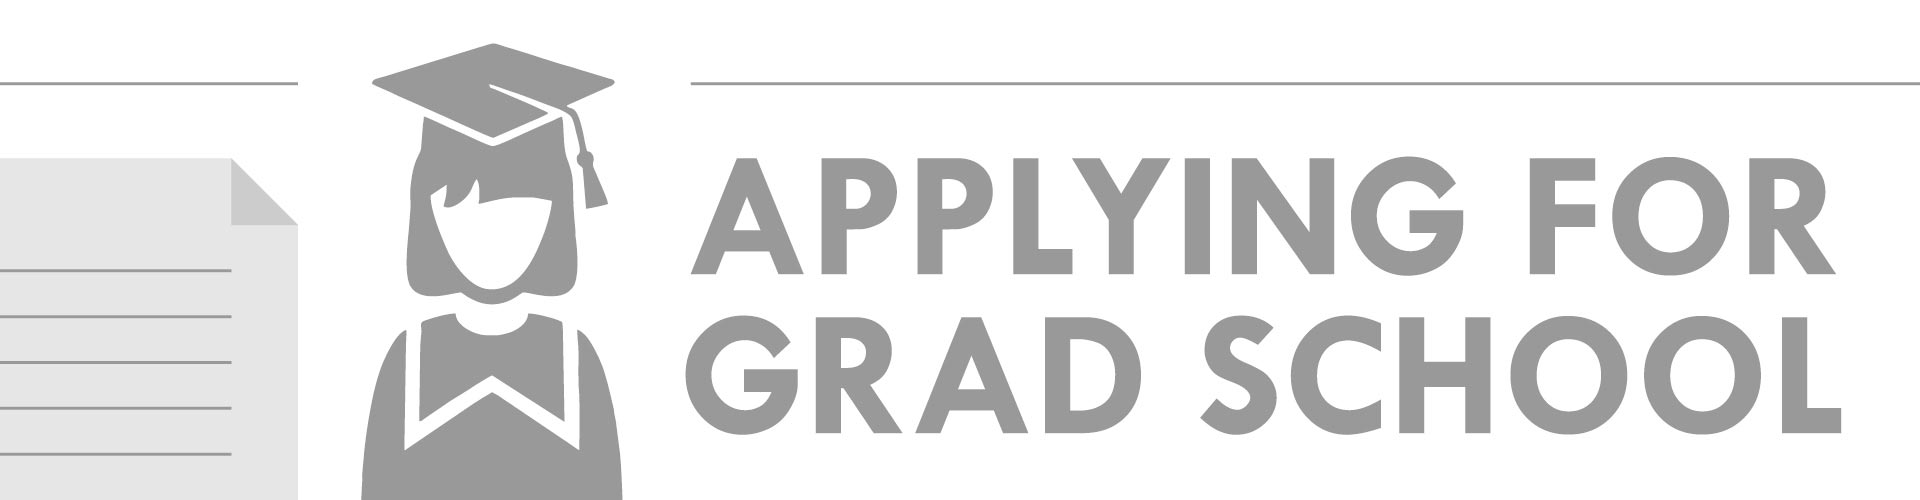 Applying for Graduate School